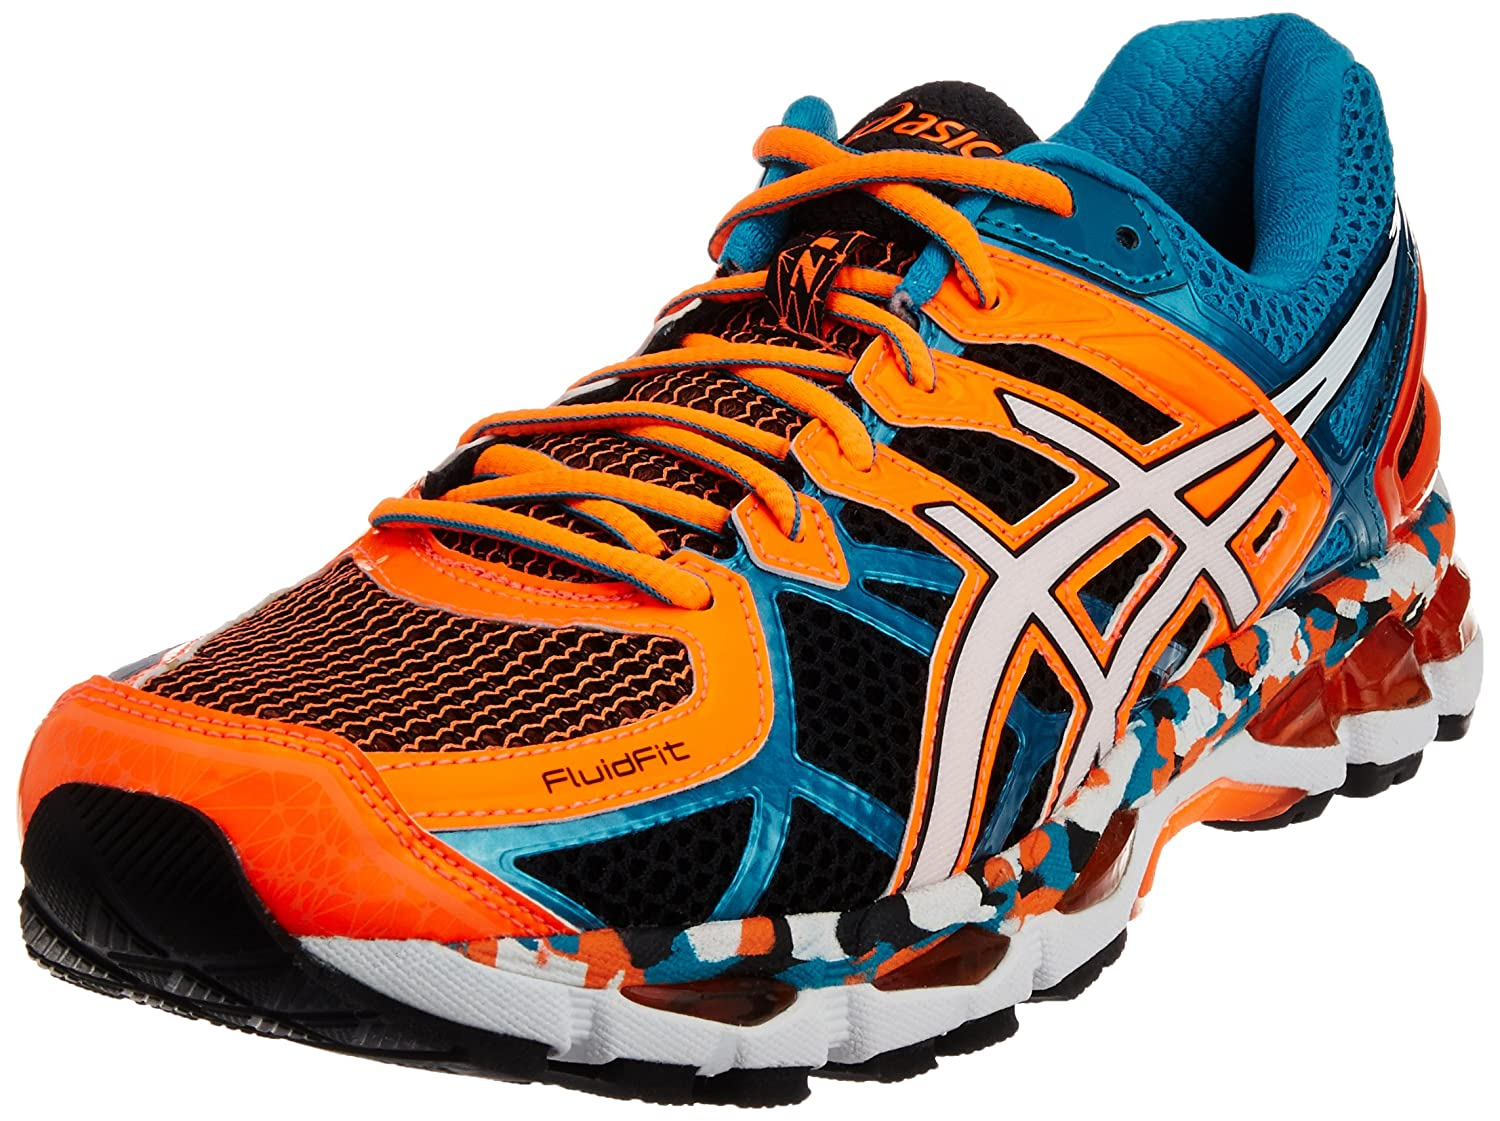 asics kayano 21 orange